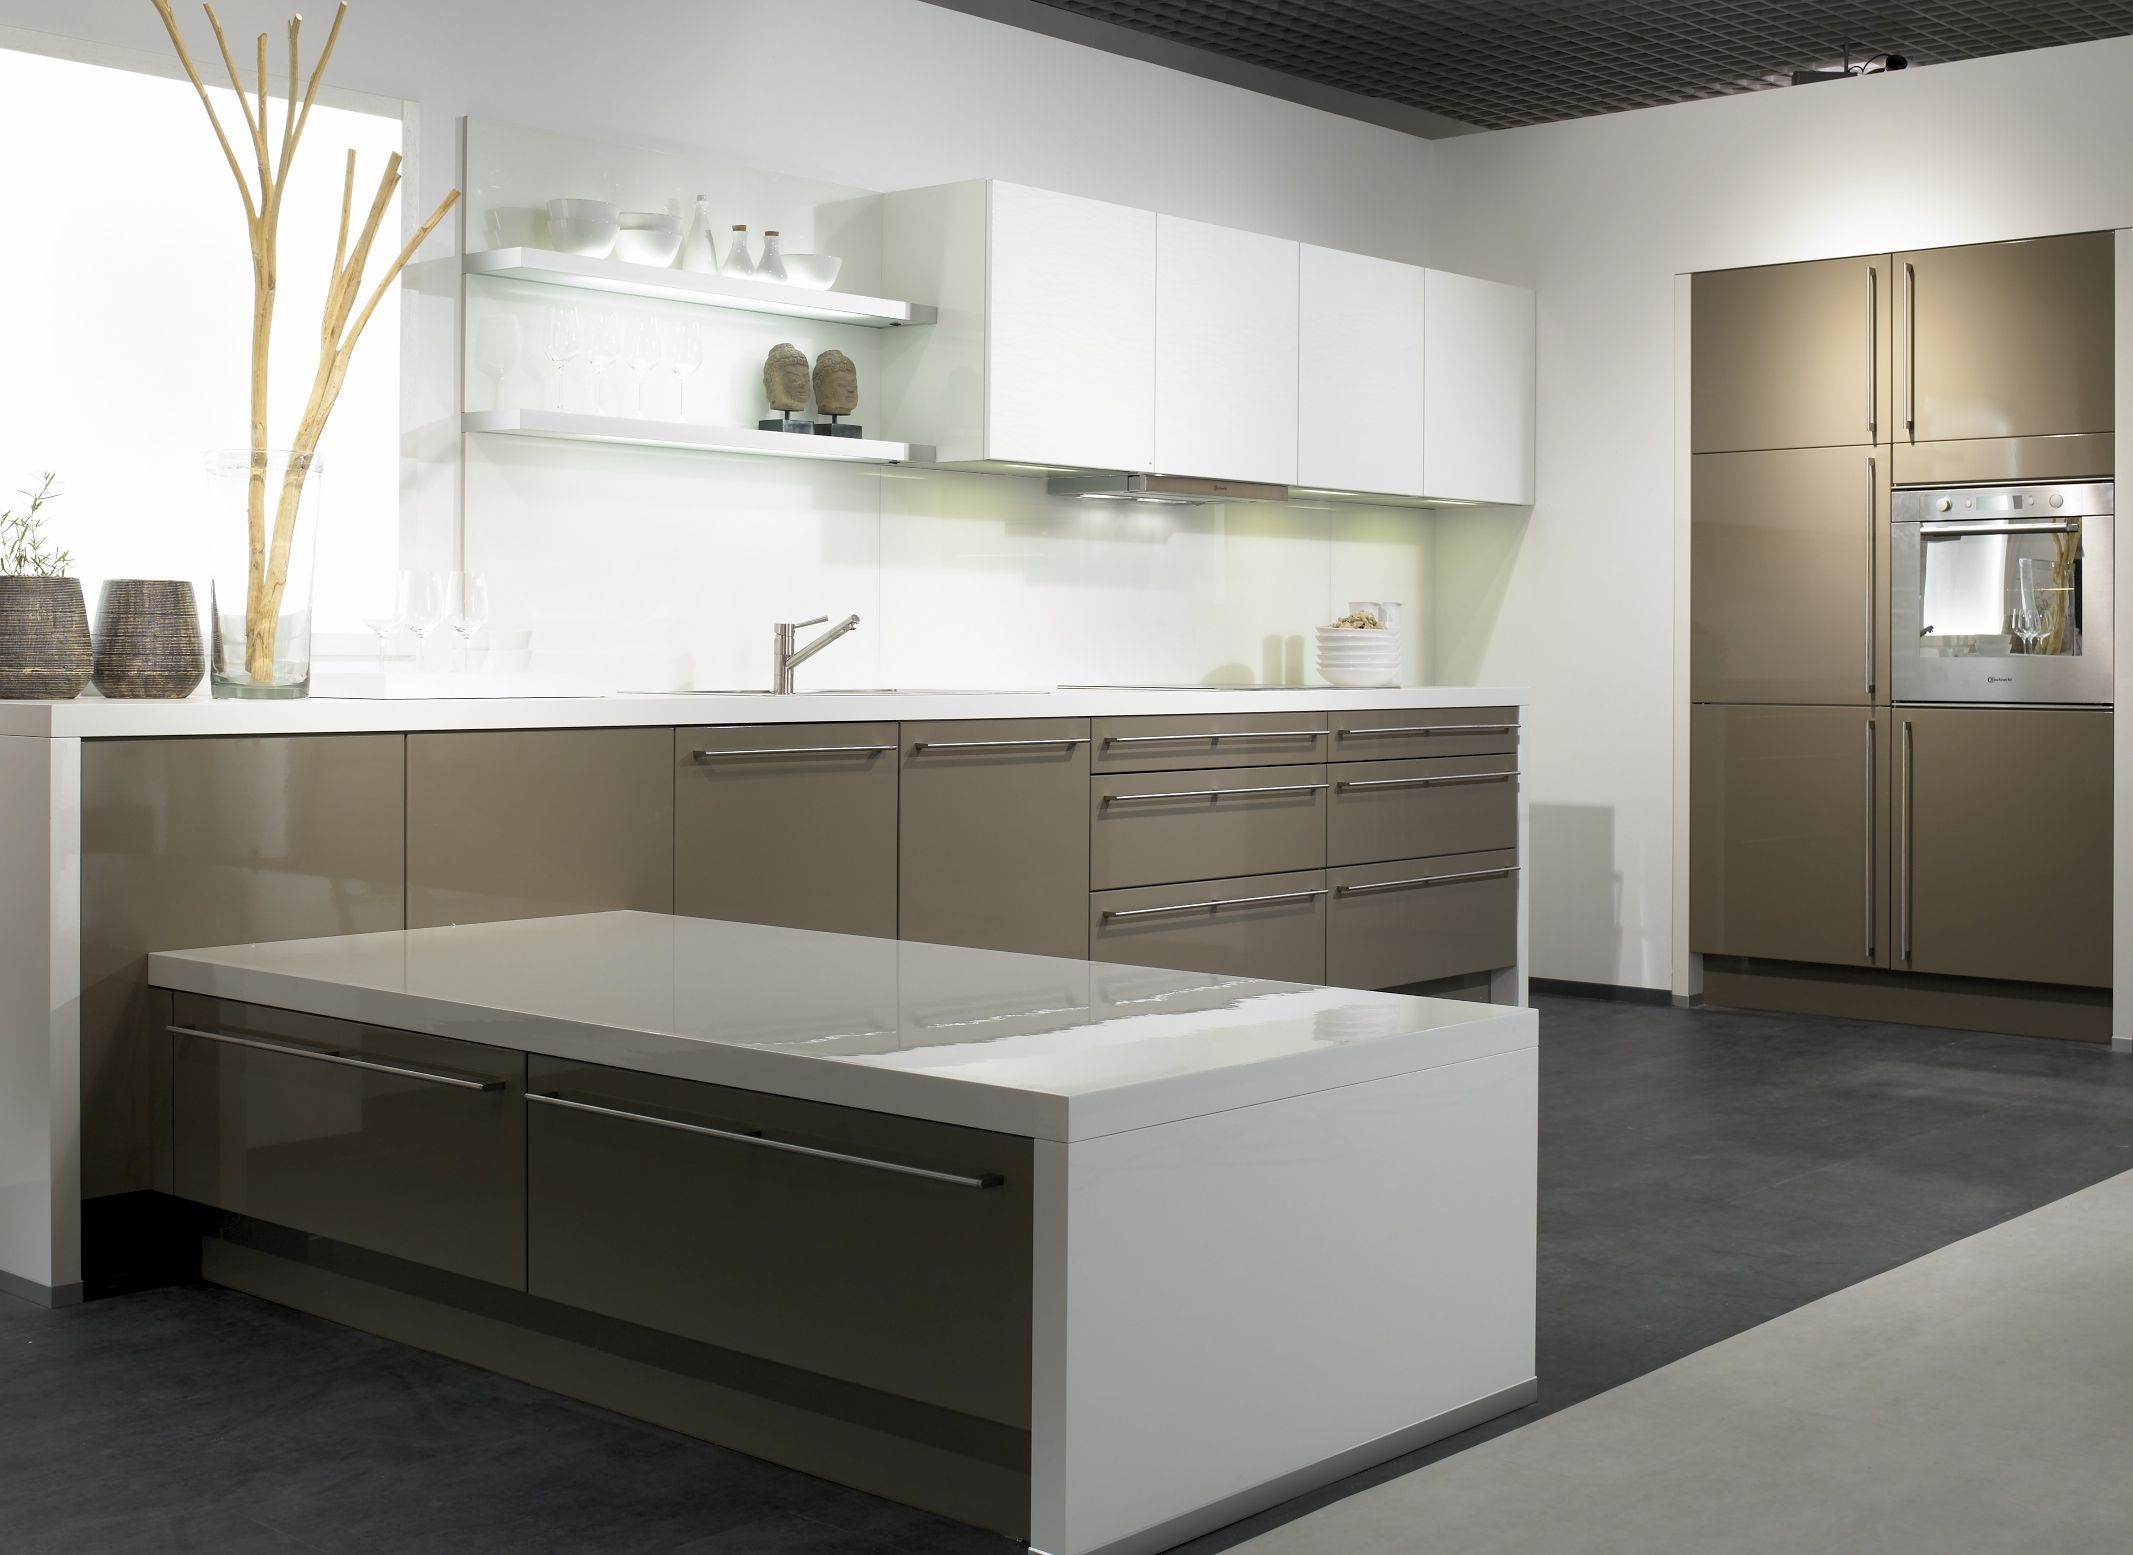 Cocina en blanco y girs beige the singular kitchen - Singular kitchen valencia ...